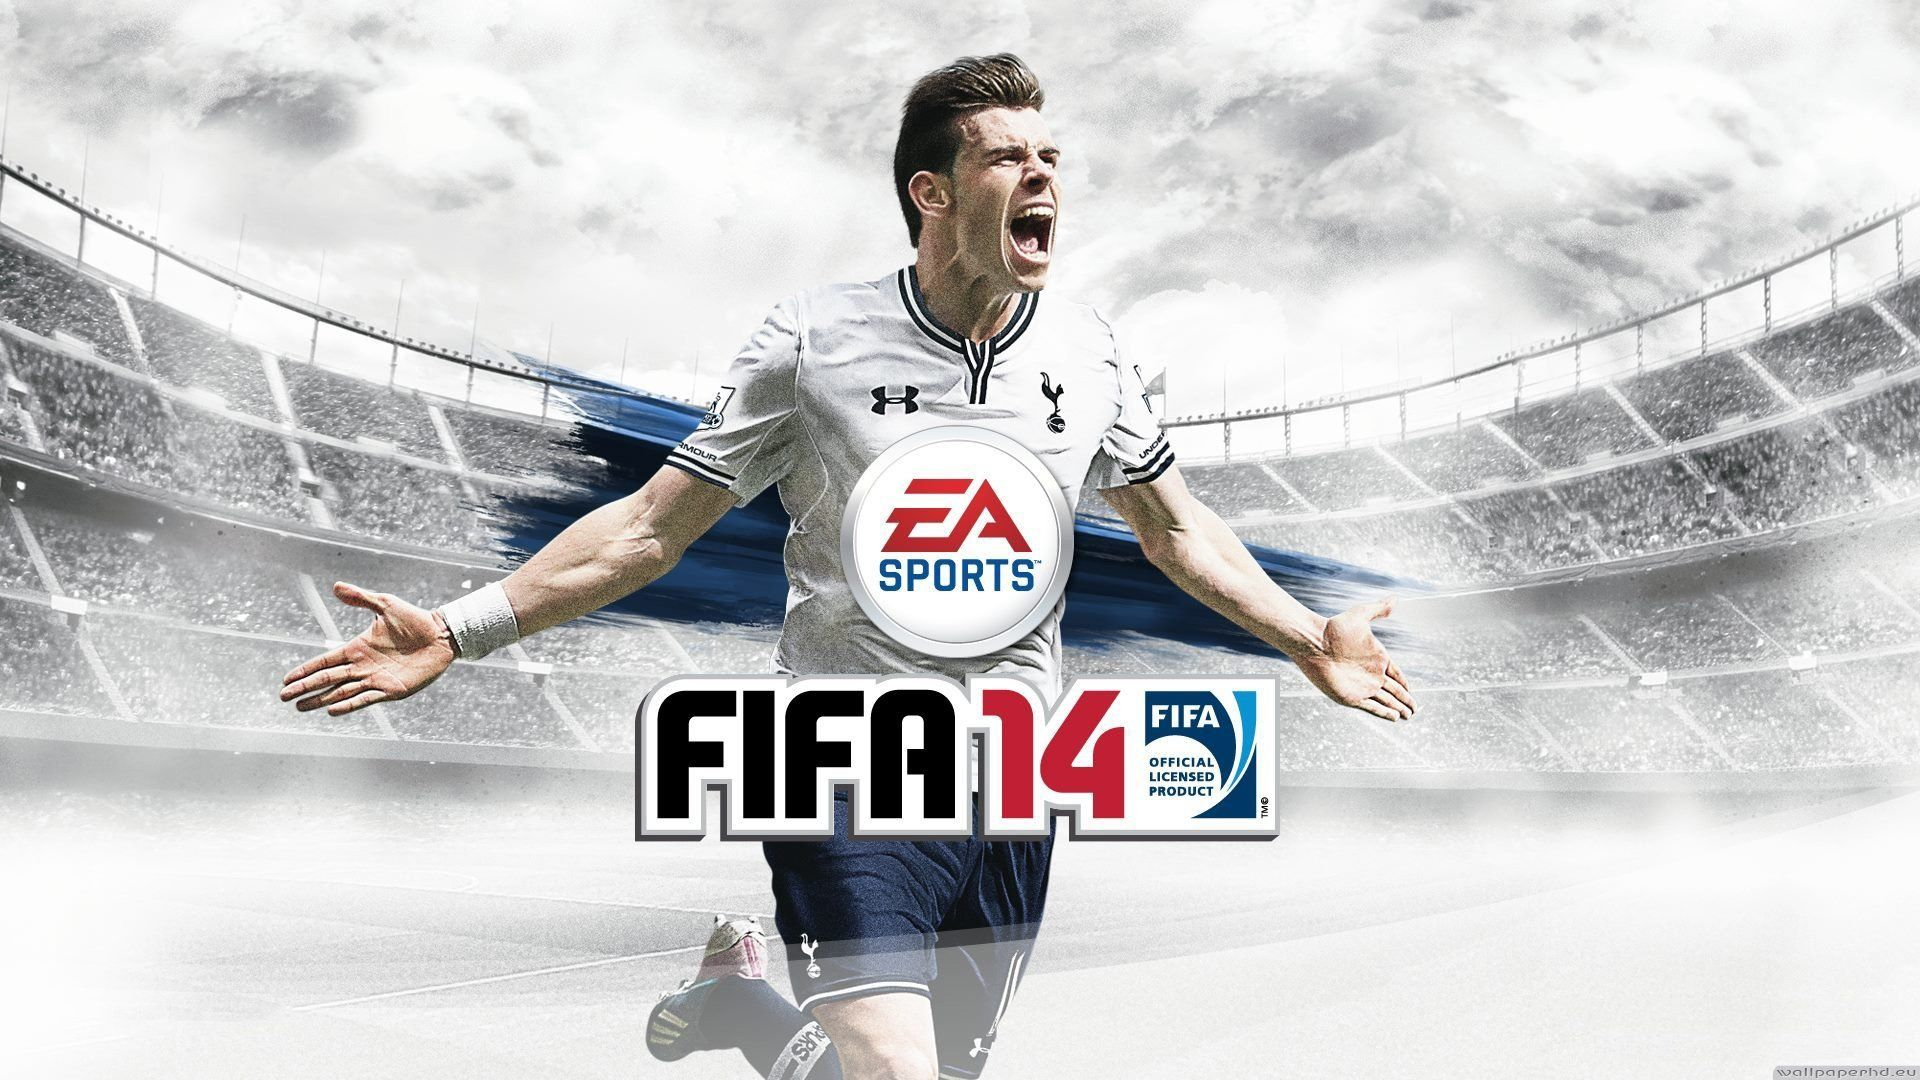 Fifa 14 Free Download Allgames4me C 2014 Fifa Game Download Free Fifa Games